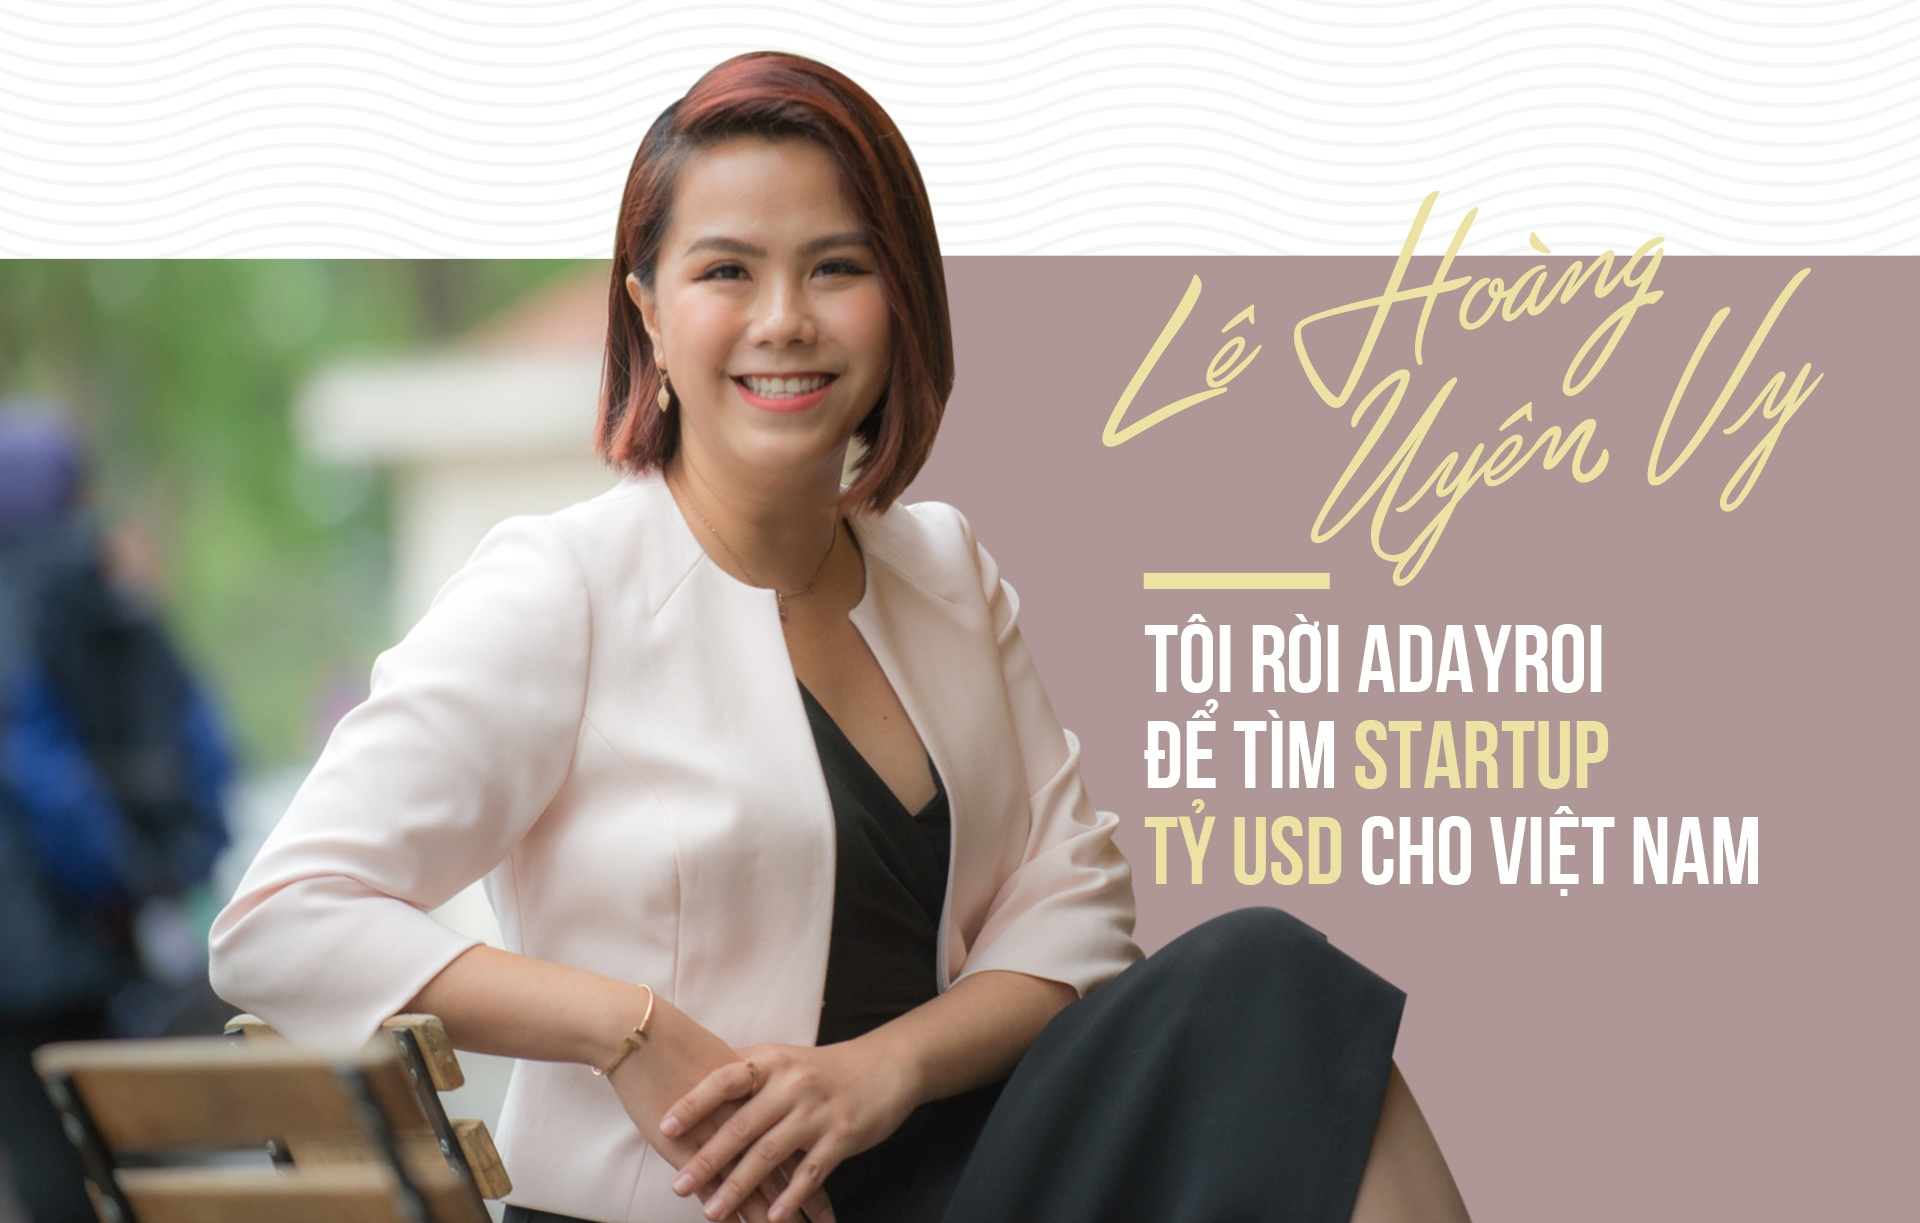 Le Hoang Uyen Vy: Toi roi Adayroi de tim startup ty USD cho Viet Nam hinh anh 2